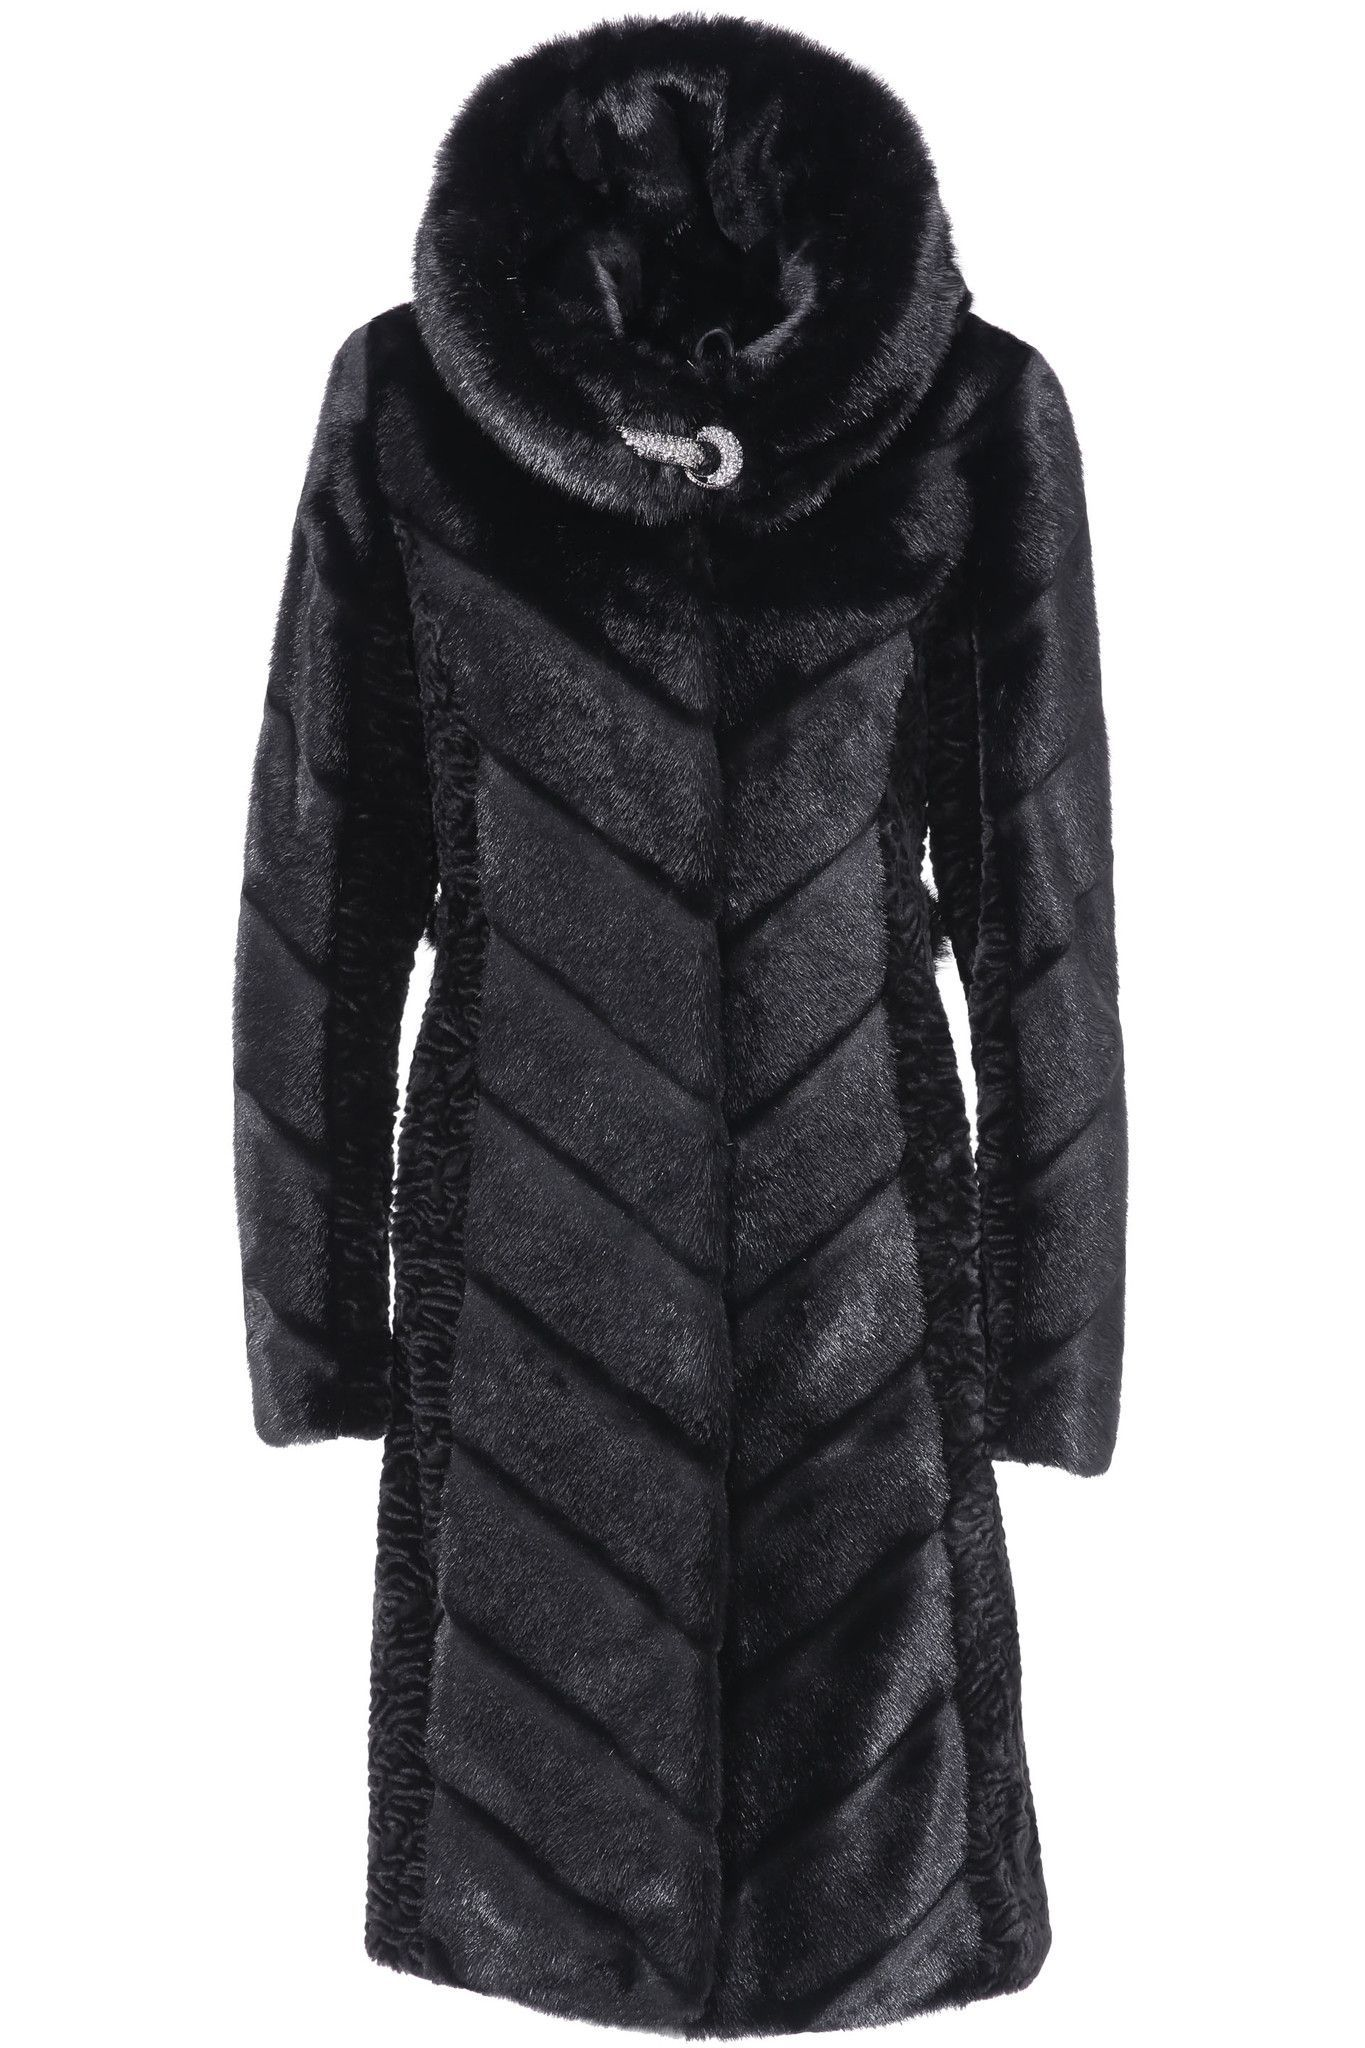 9ae69e29 ... adorned with artfully designed flashy black mink stripes across its  front. Not only does this add an interesting highlight to the black faux fur  jacket, ...